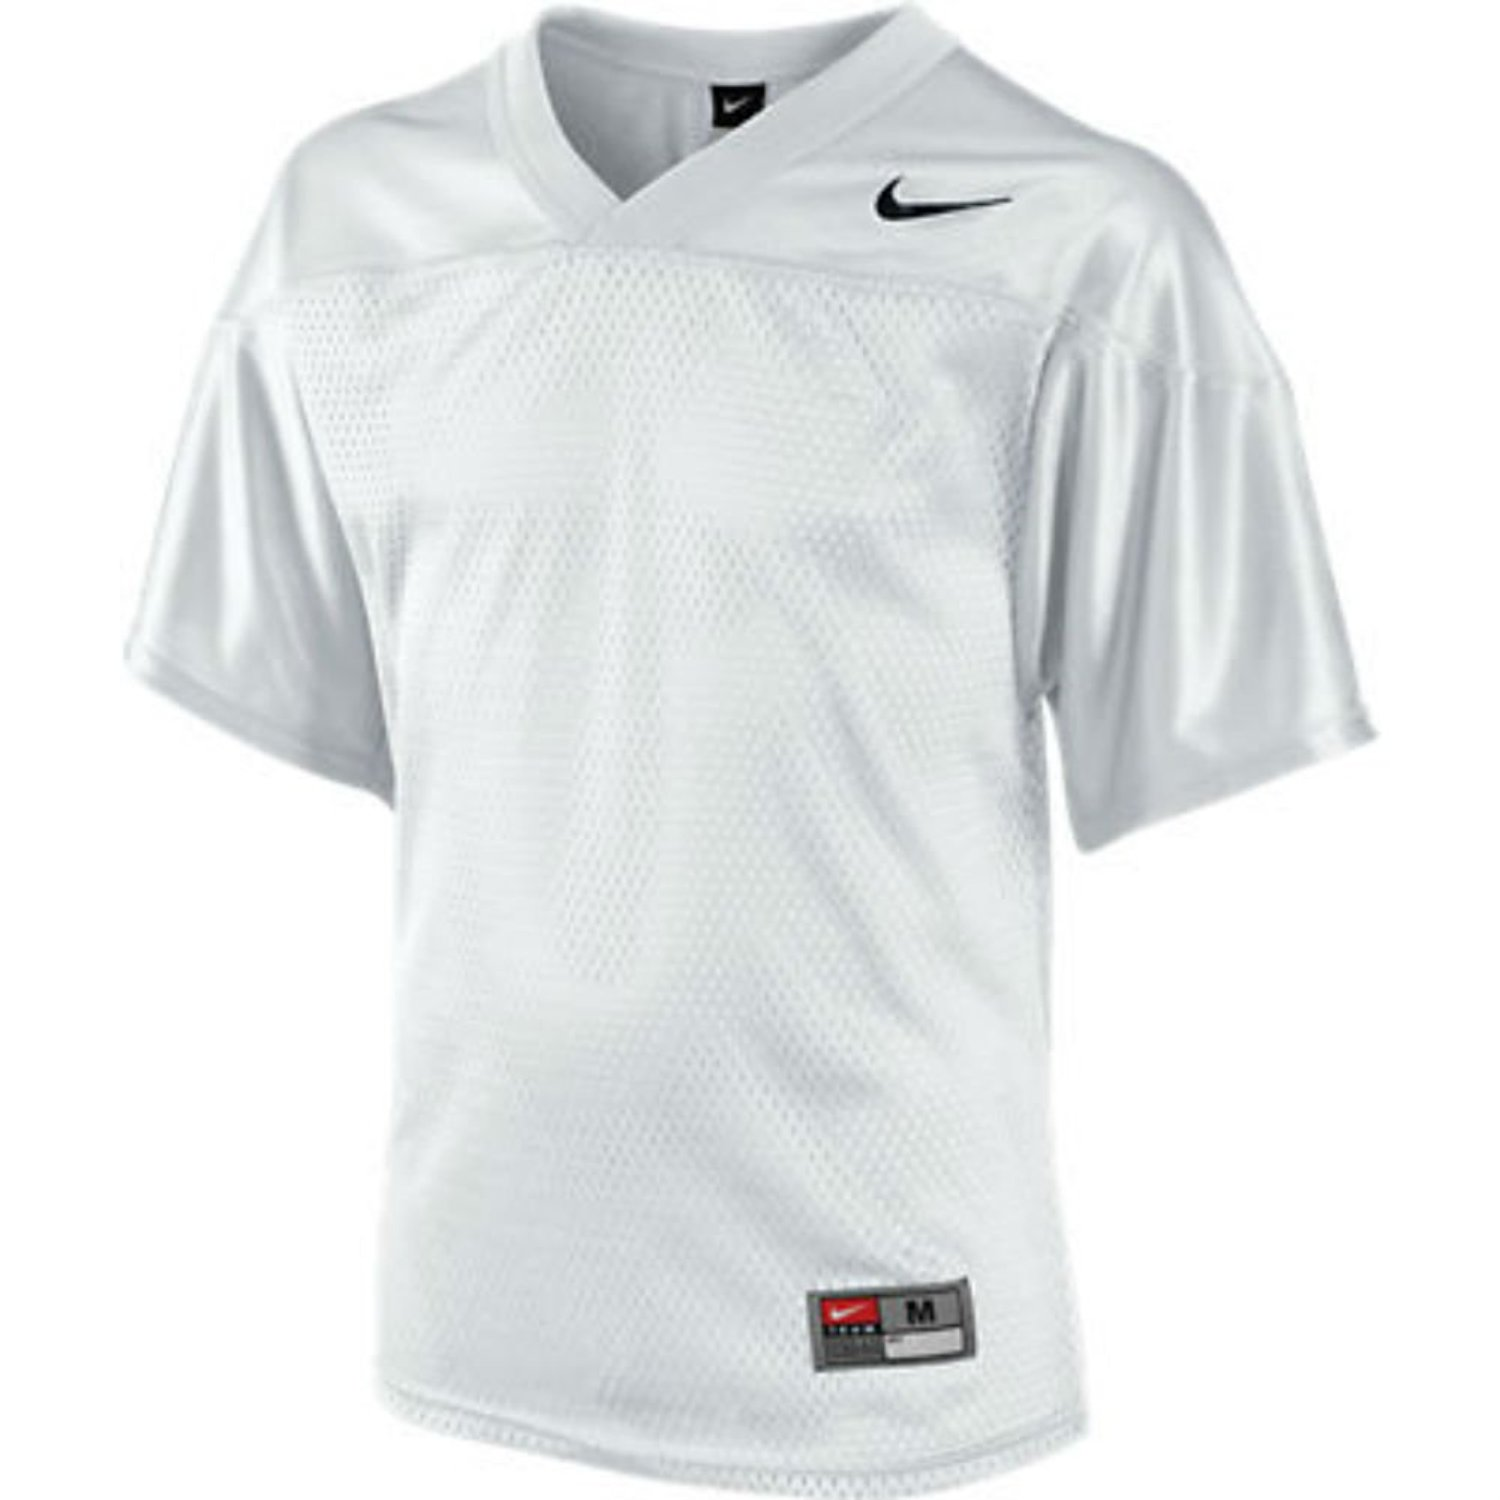 9a7d70e71 Buy Nike Adult Core Football Practice Jersey in Cheap Price on ...